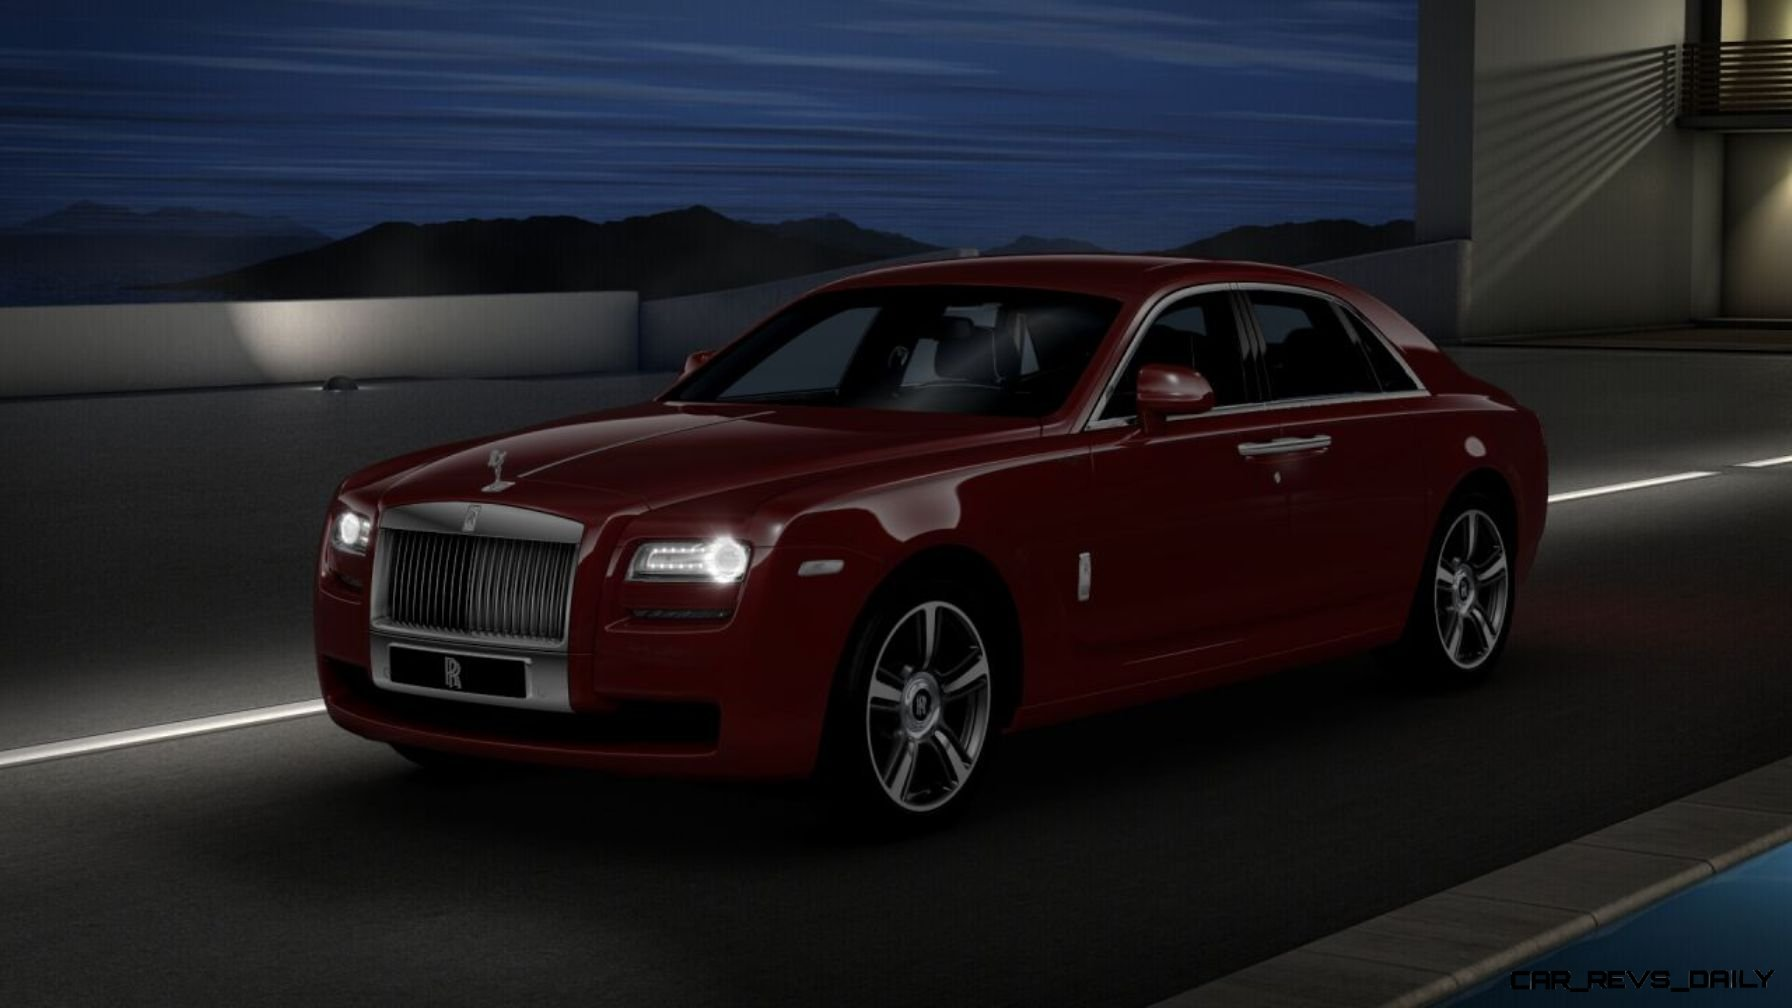 2014 rolls royce ghost v spec adds power dark glamour to swb and lwb 4 doors. Black Bedroom Furniture Sets. Home Design Ideas